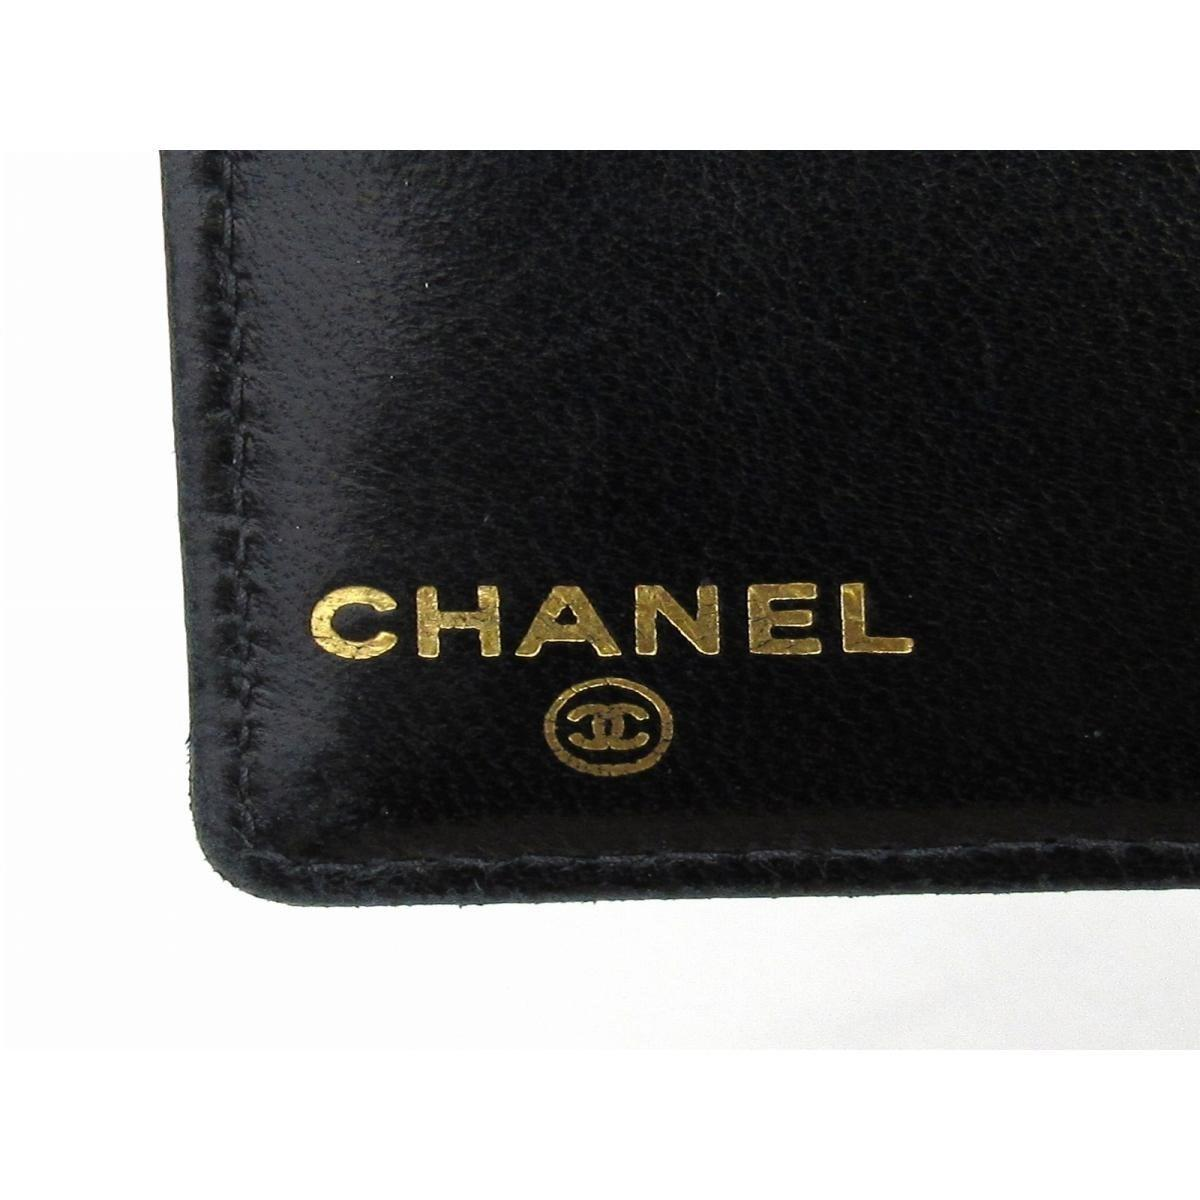 8fc005e5d6cd47 Chanel Auth Cc Bi-fold Long Wallet Purse Caviar Skin Leather Black Used  Vintage in Black - Lyst